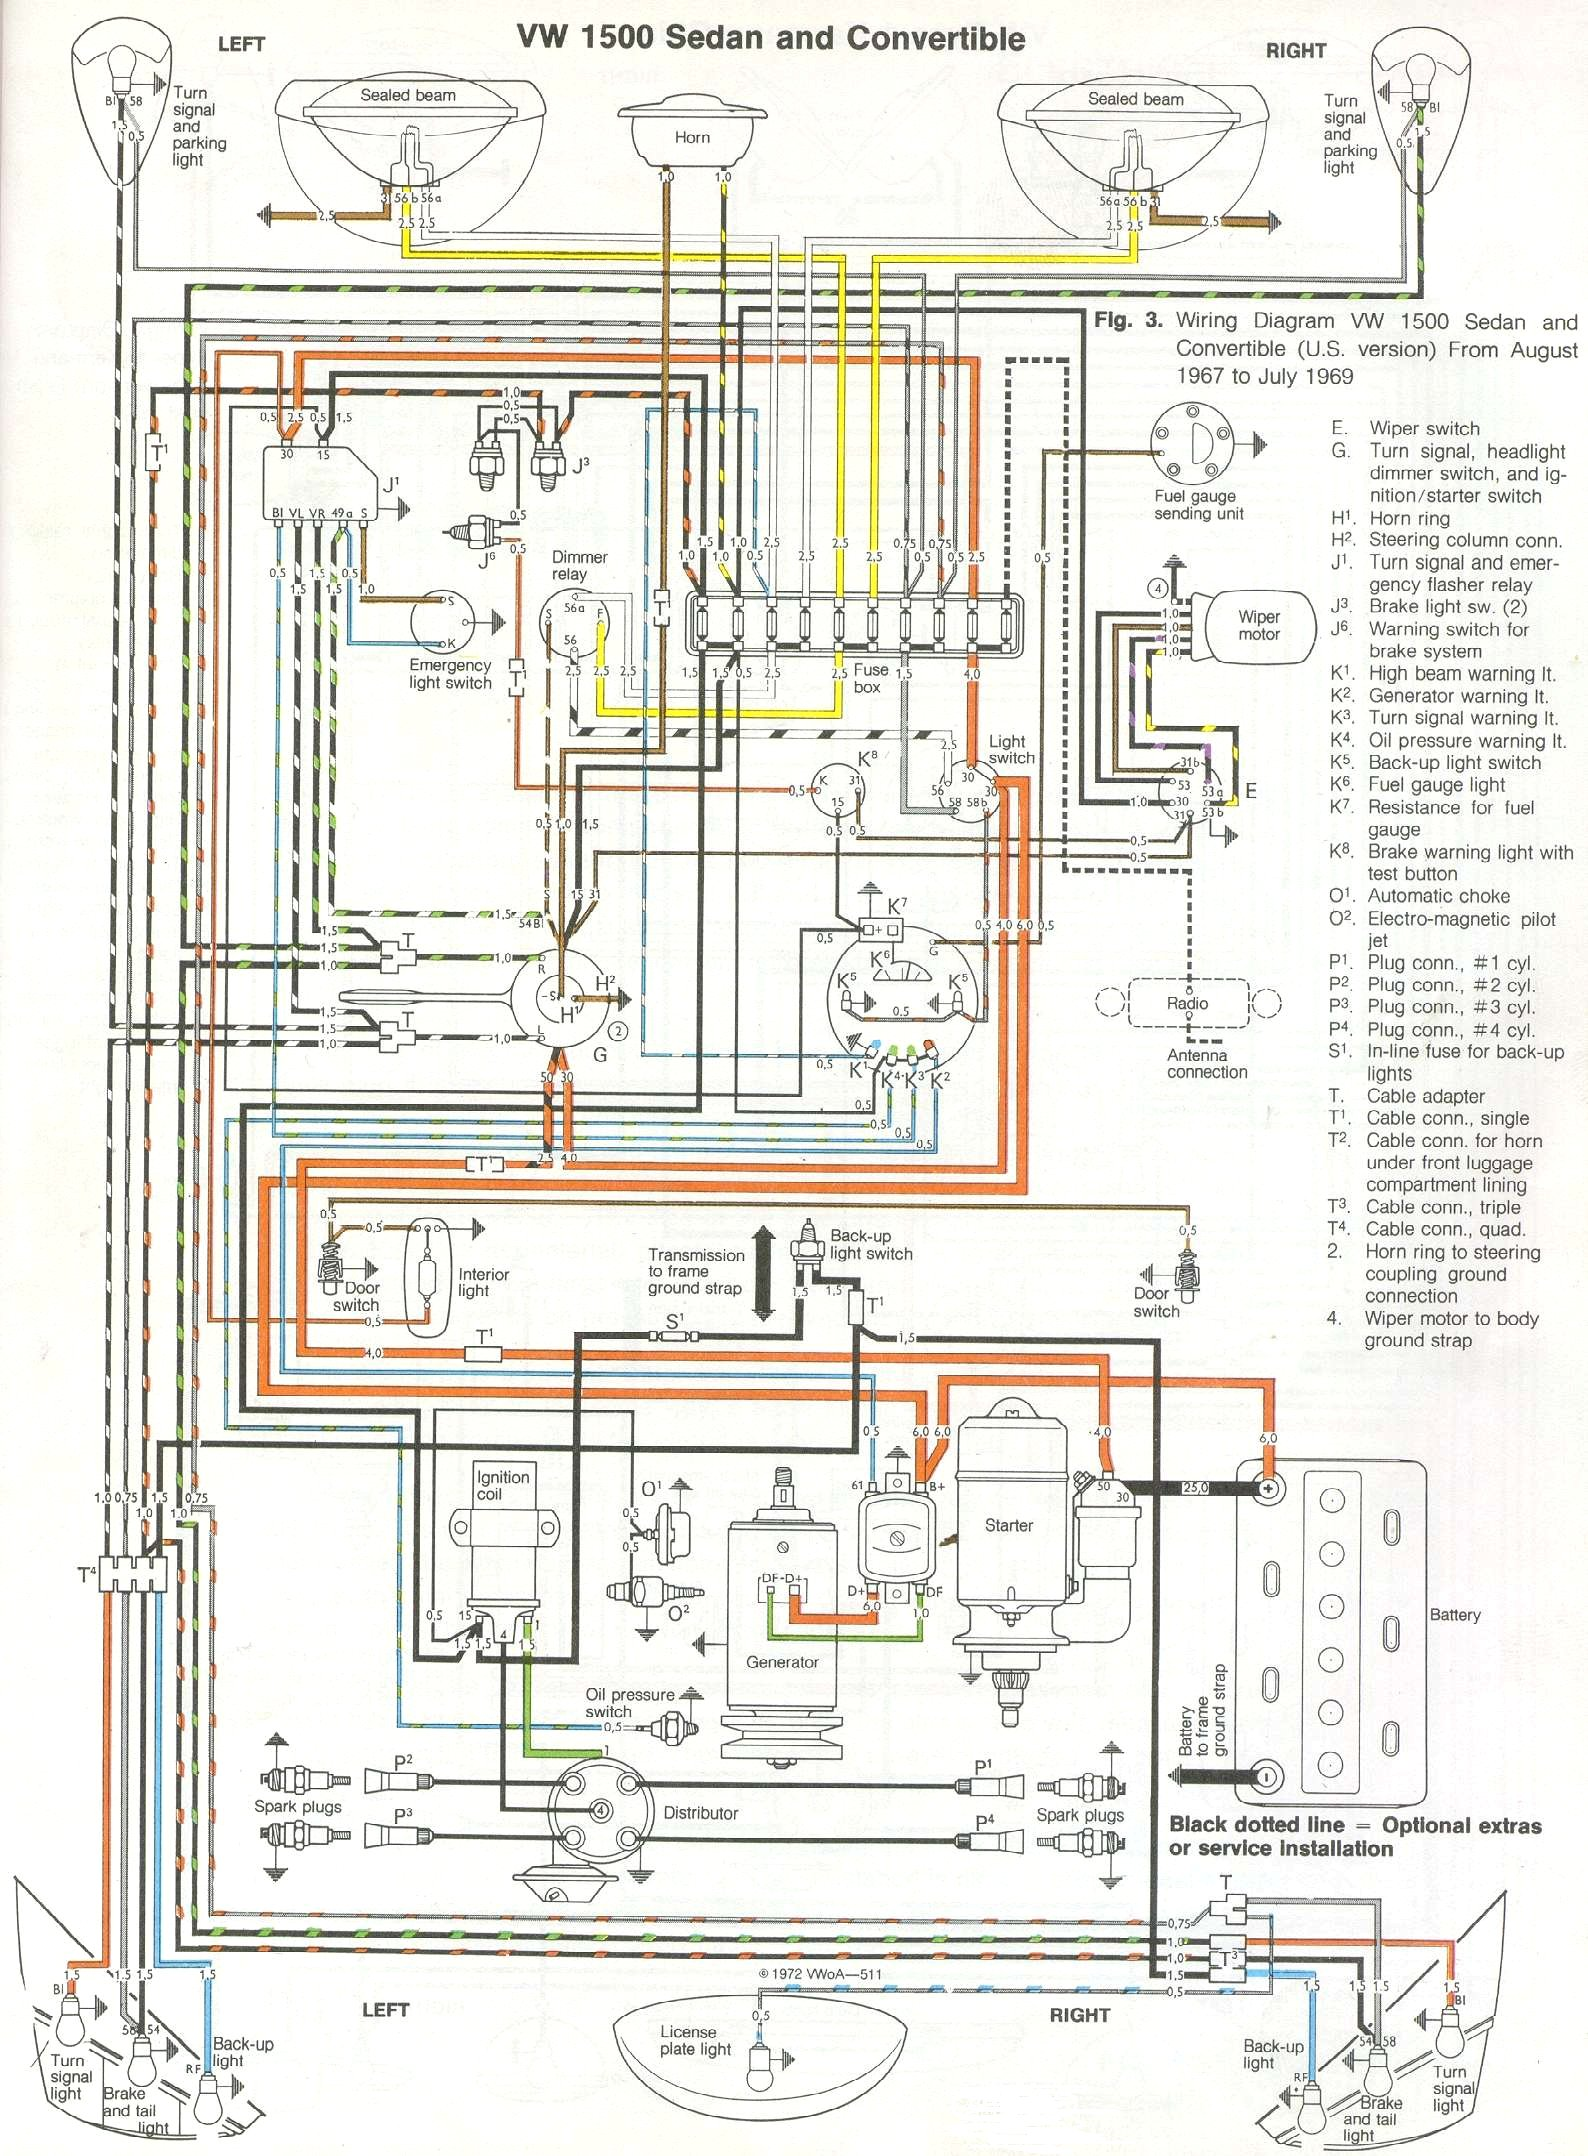 bug_6869 vw wiring harness diagram cj7 wiring harness diagram \u2022 wiring Wiring Harness Diagram at honlapkeszites.co